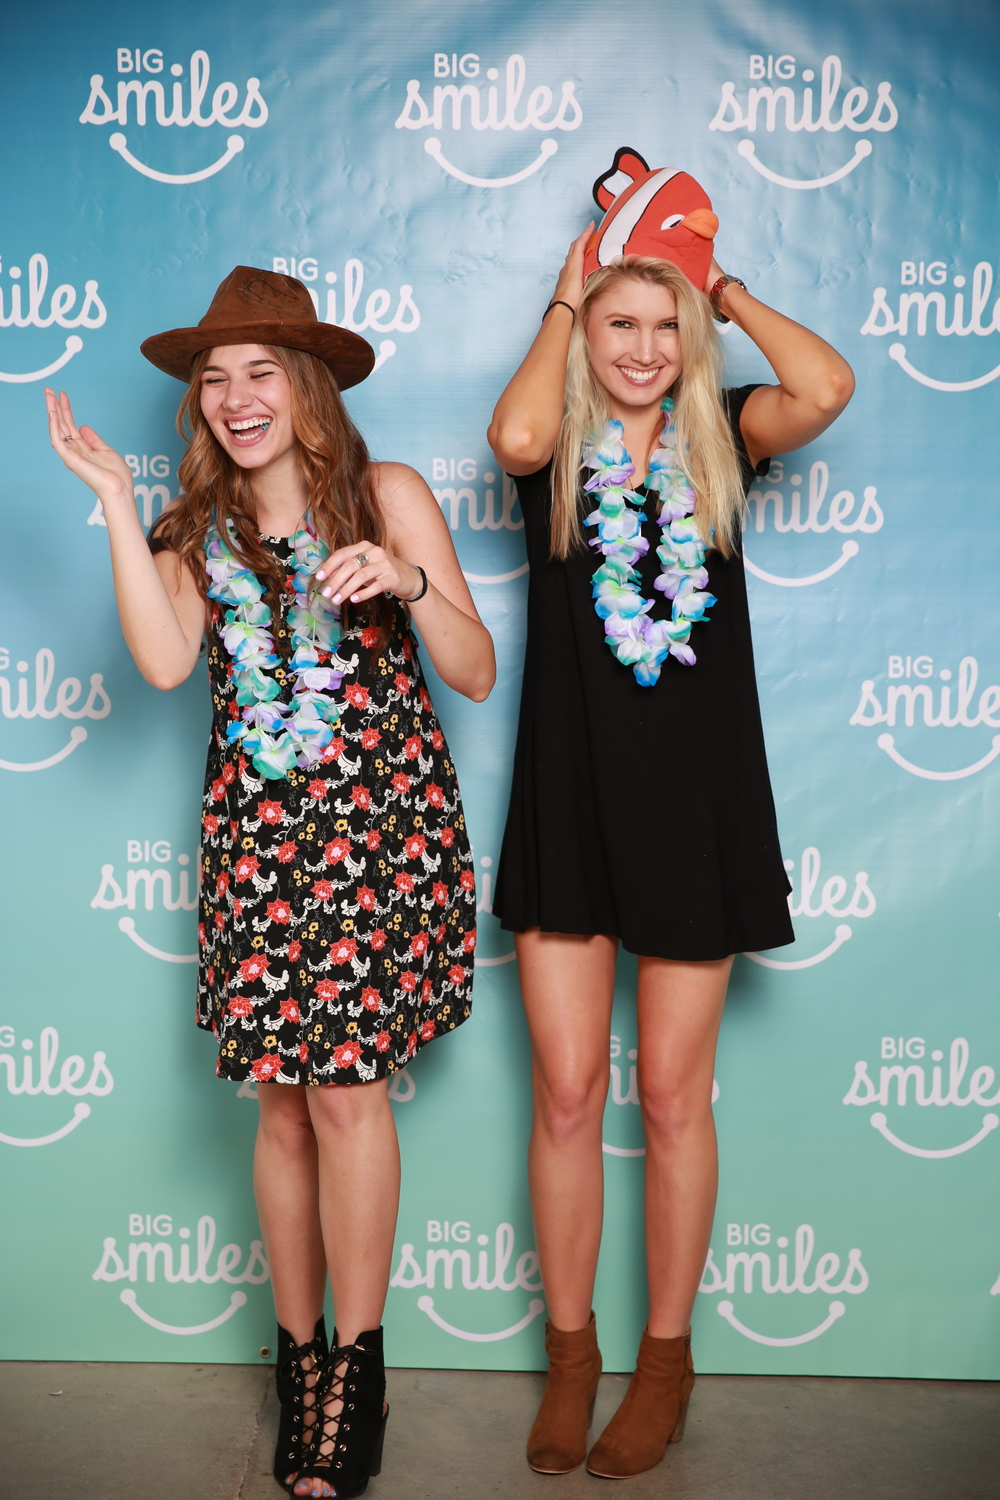 7.30.16 Big Smiles Program-225.JPG